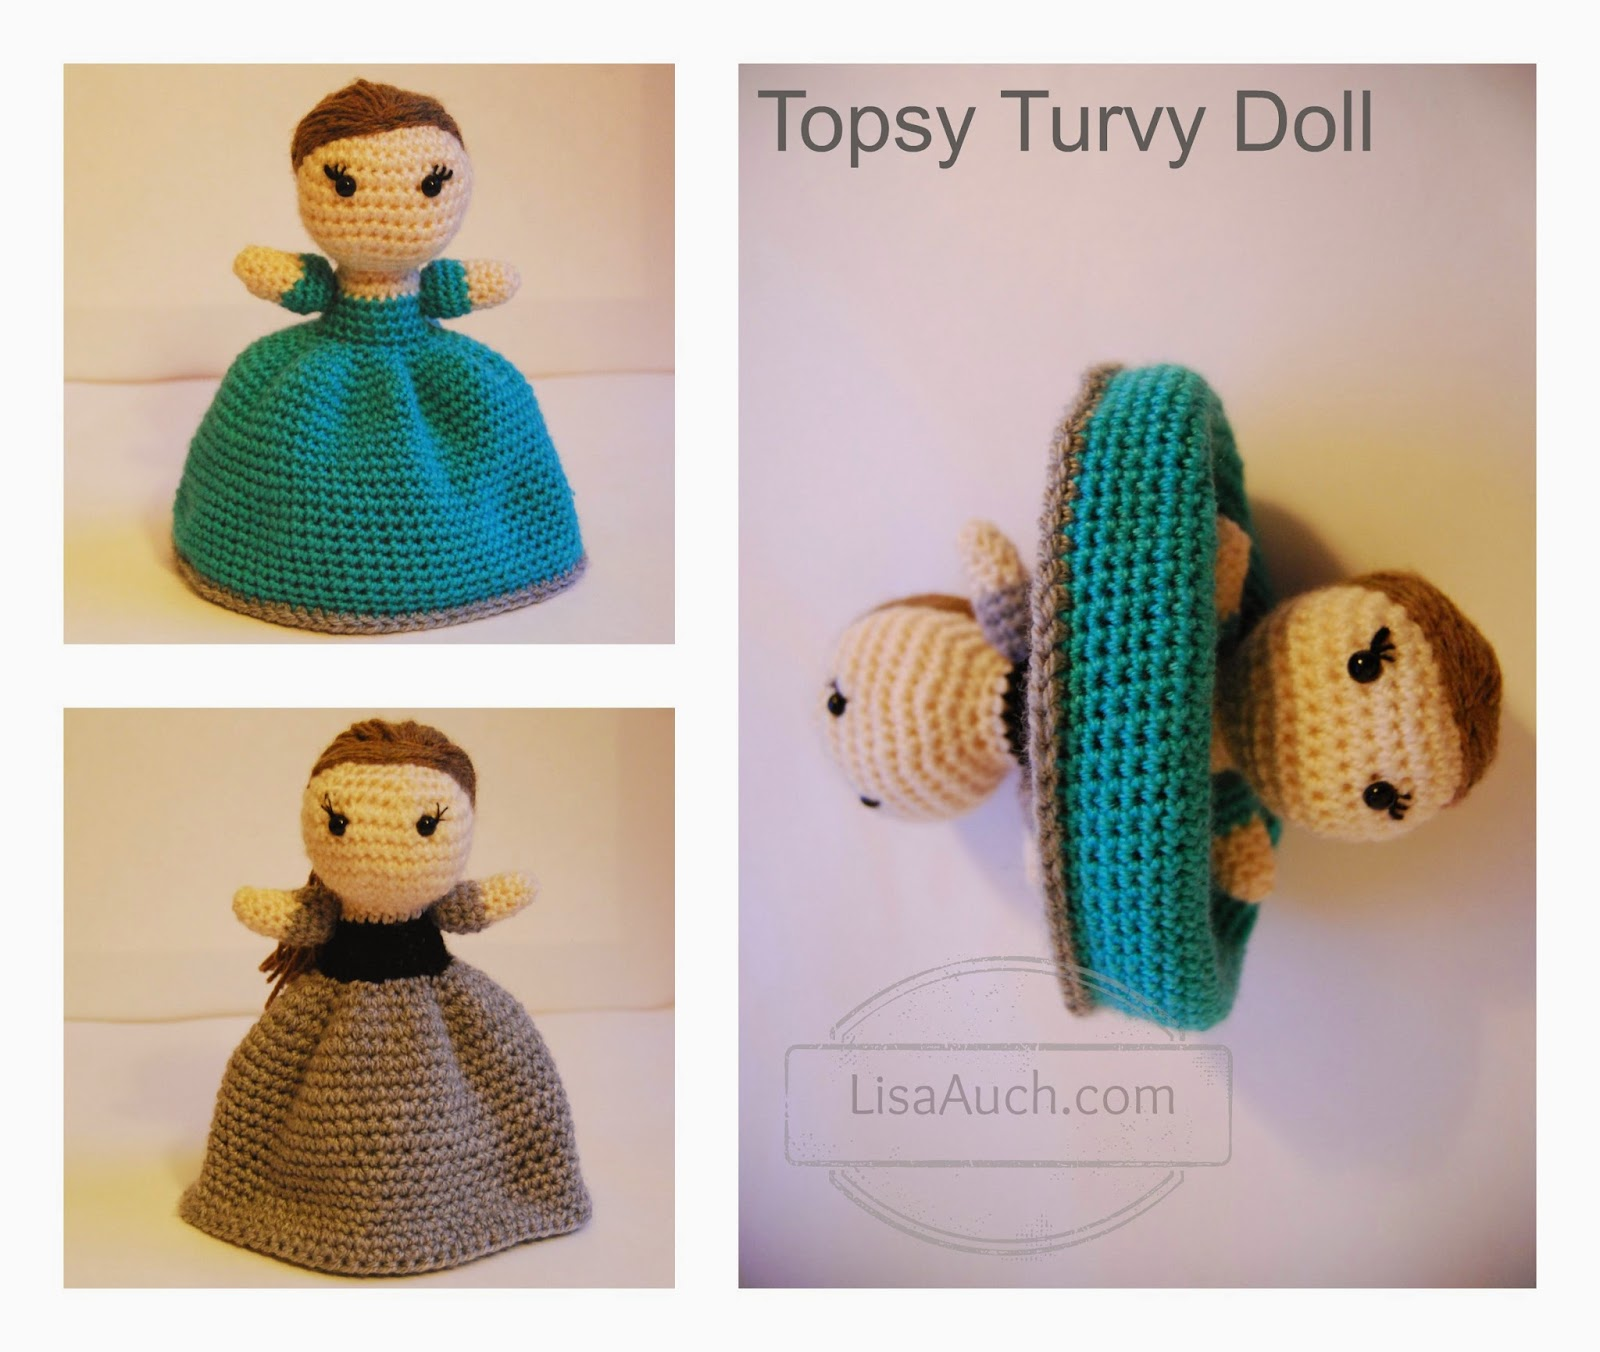 Crochet Patterns I Can Make And Sell : free crochet doll pattern, free crochet doll patterns, free pattern ...